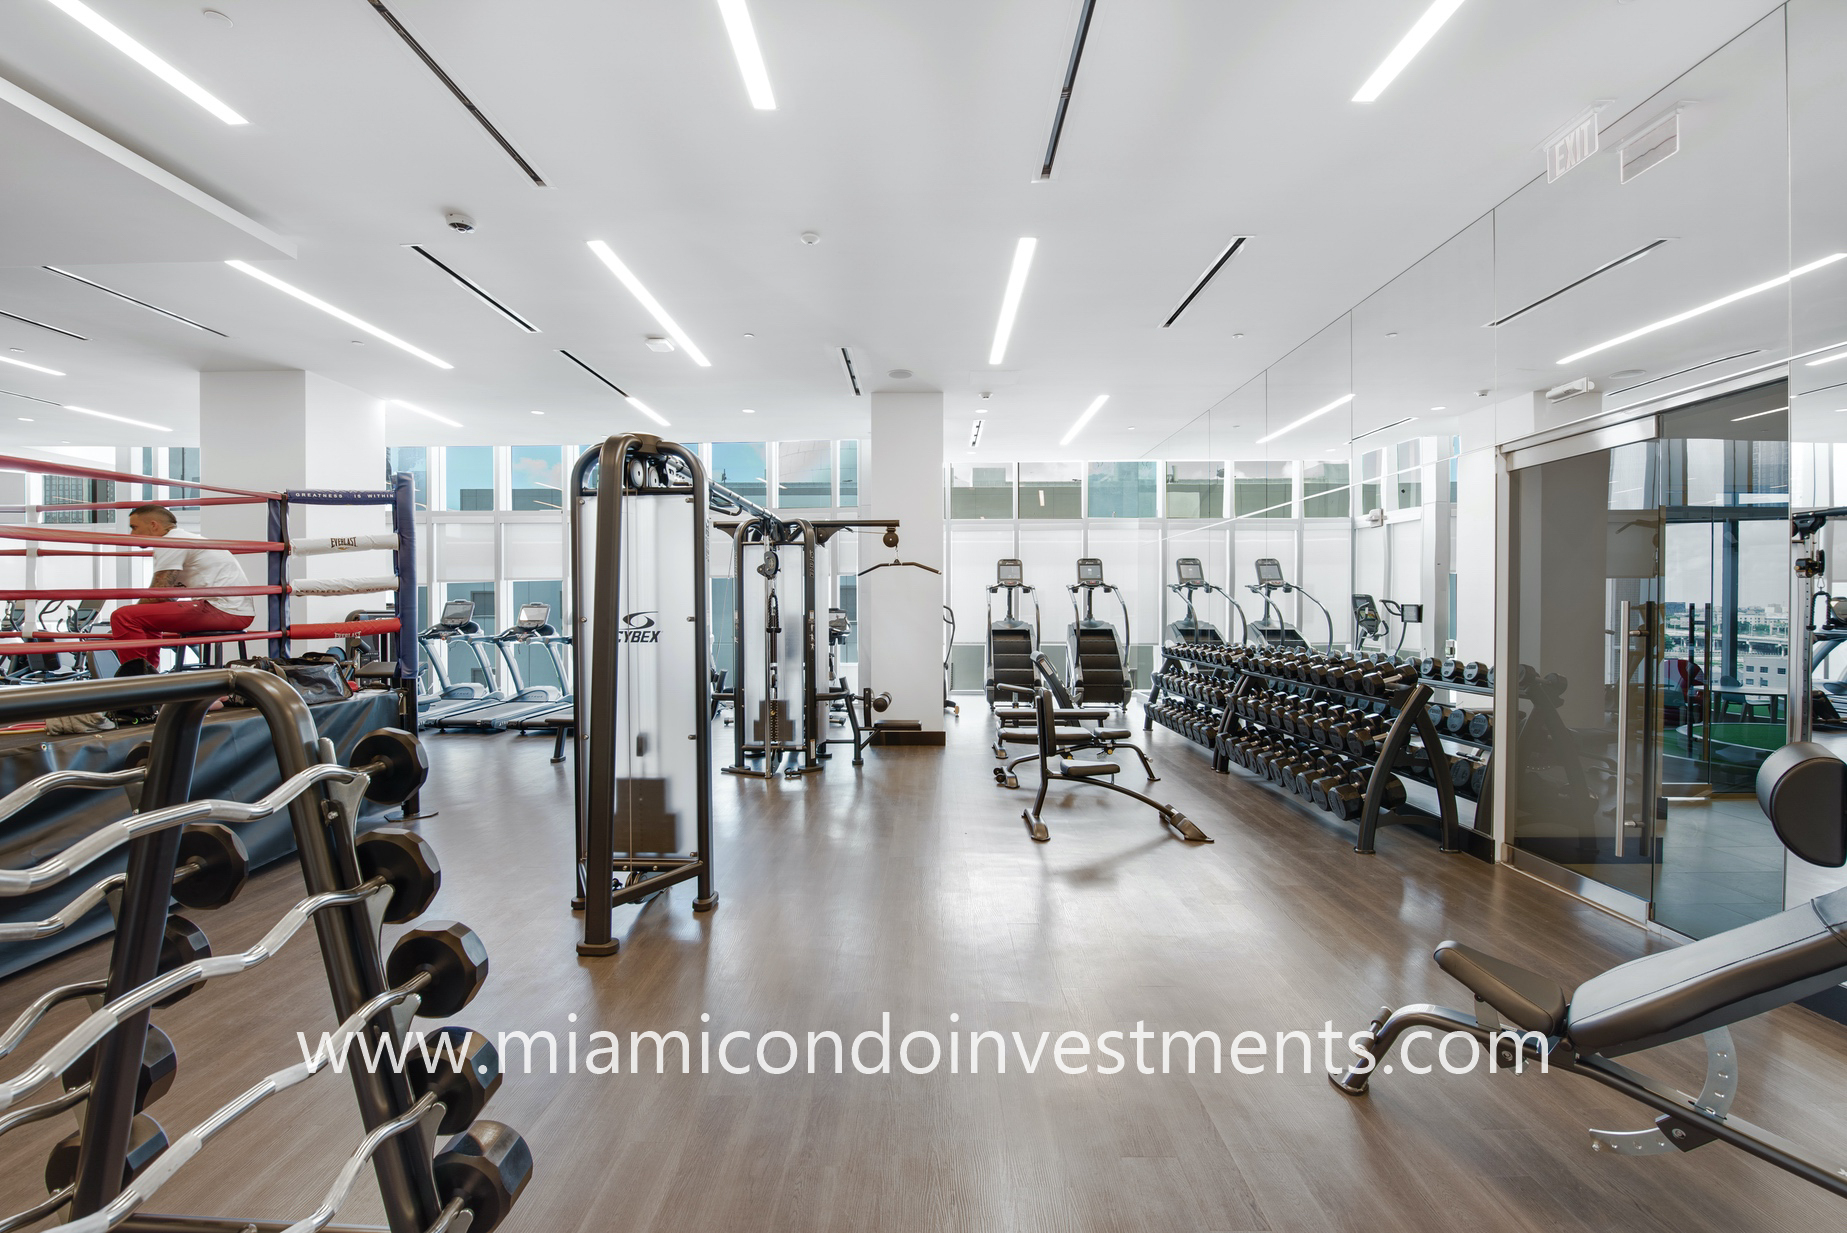 Paramount Miami fitness center and boxing ring